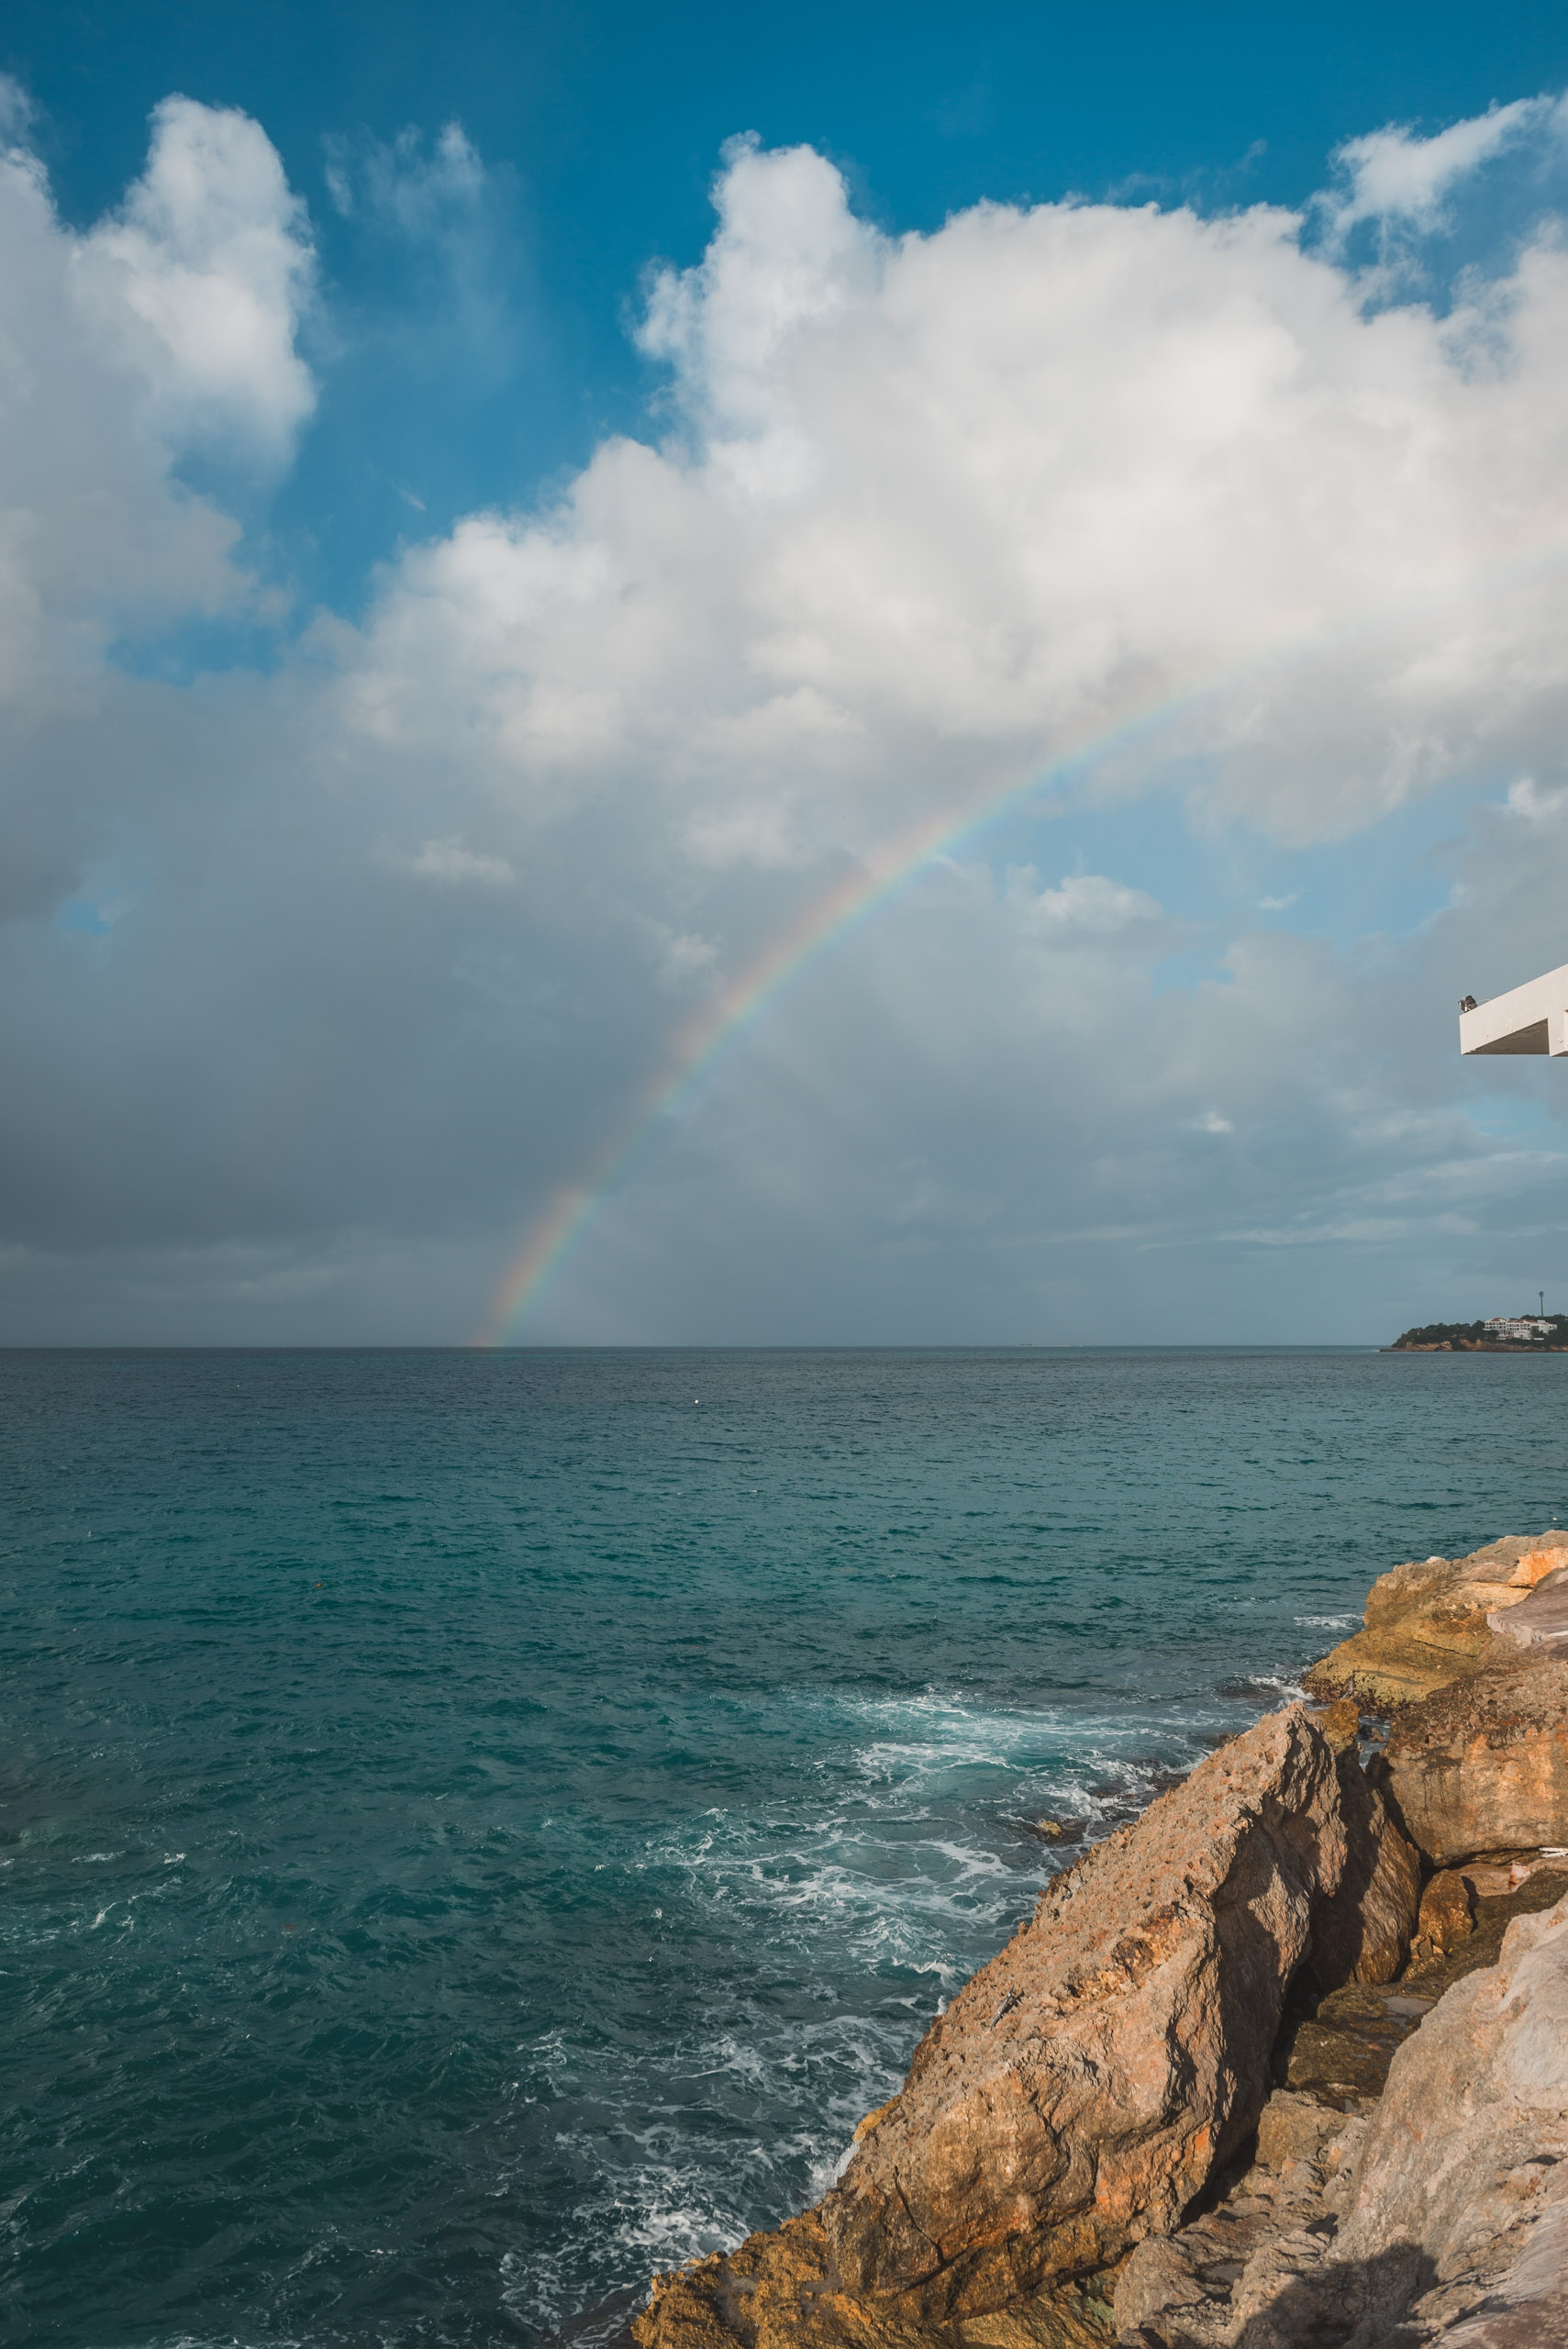 A Rainbow off the Coast of Anguilla